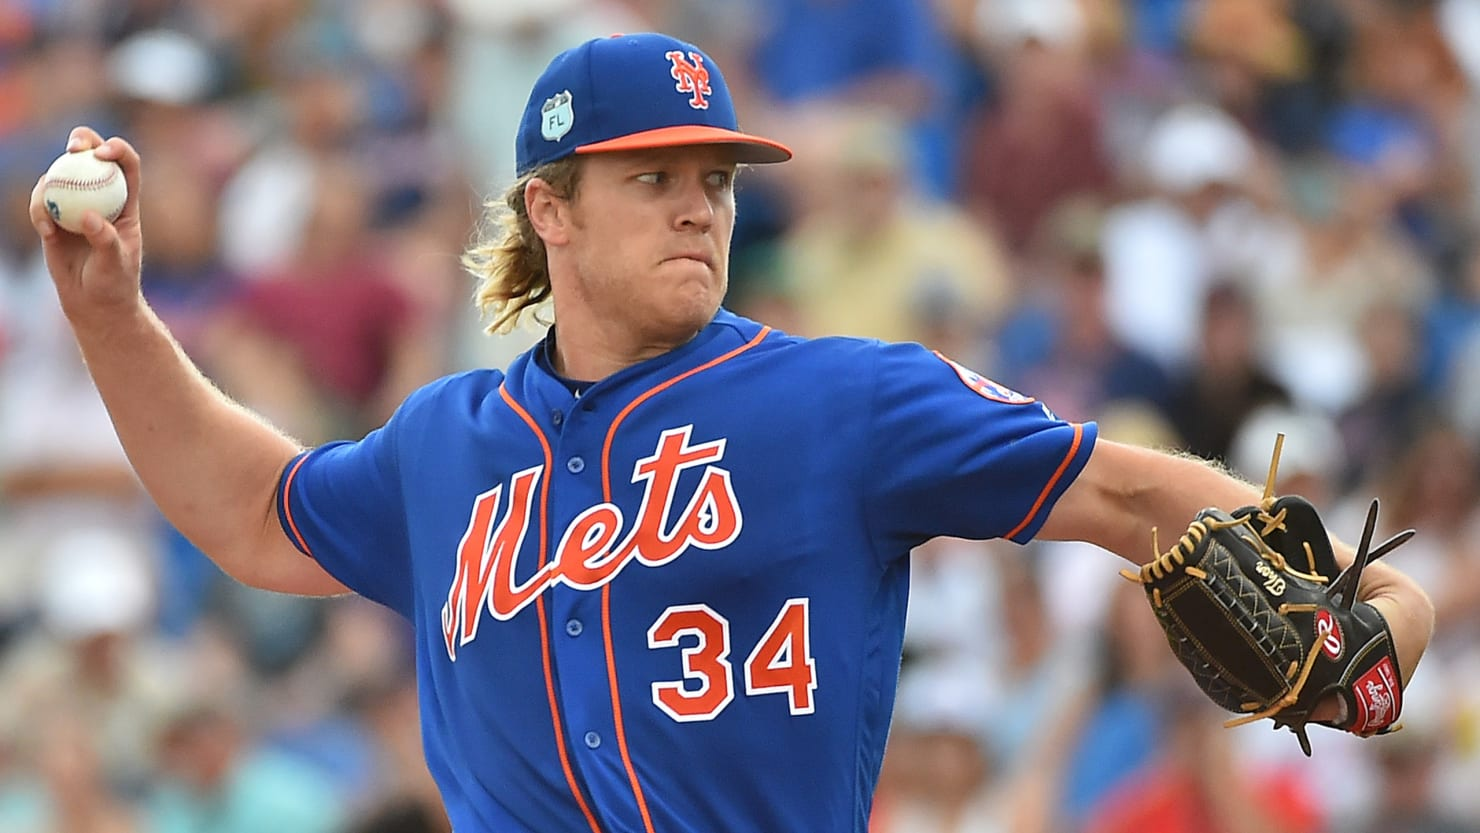 All-Star Pitcher Noah Syndergaard's Kryptonite